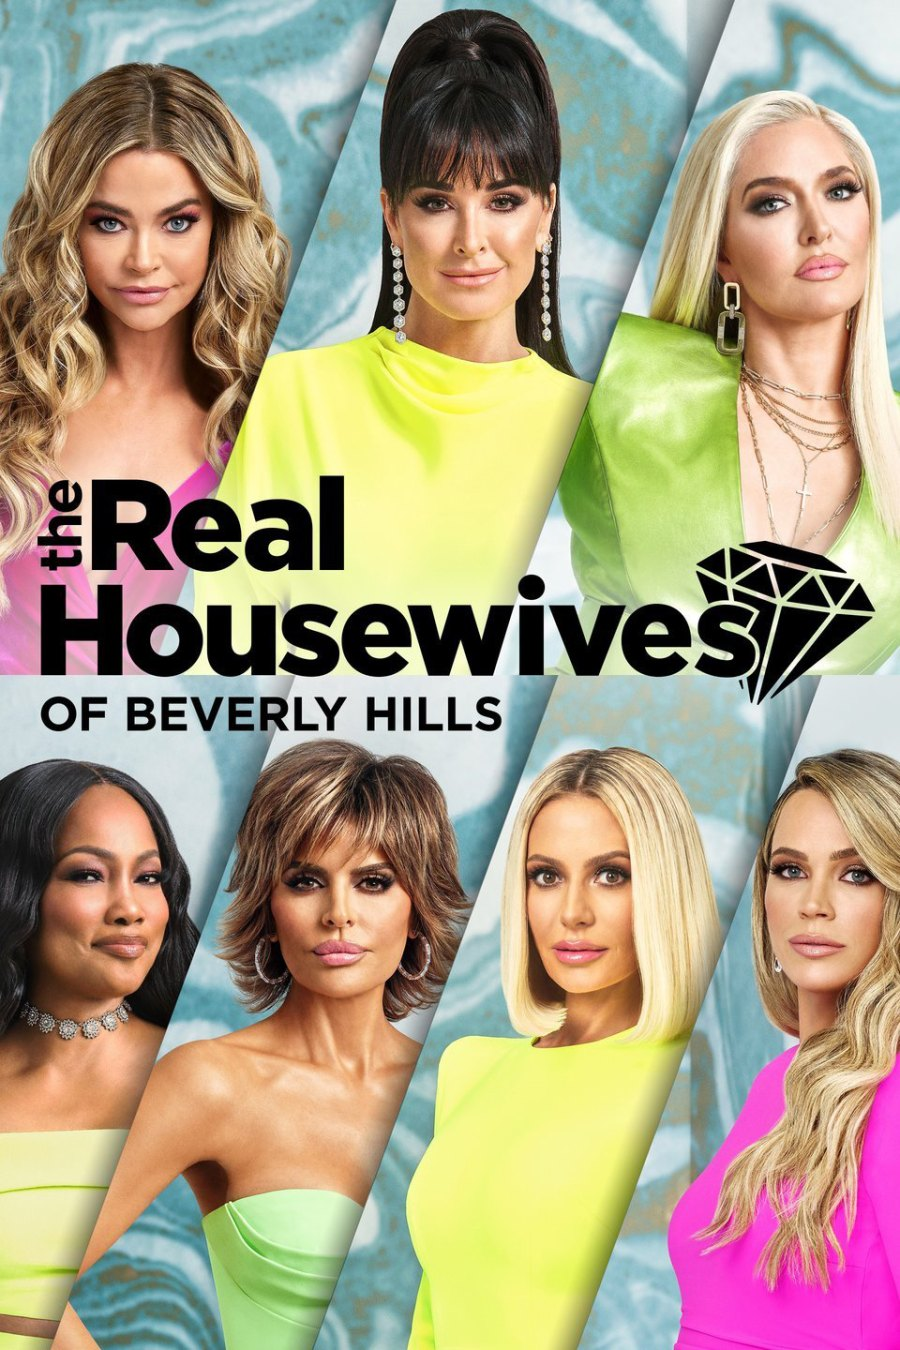 The Real Housewives of Beverly Hills What to Watch This Week June 10